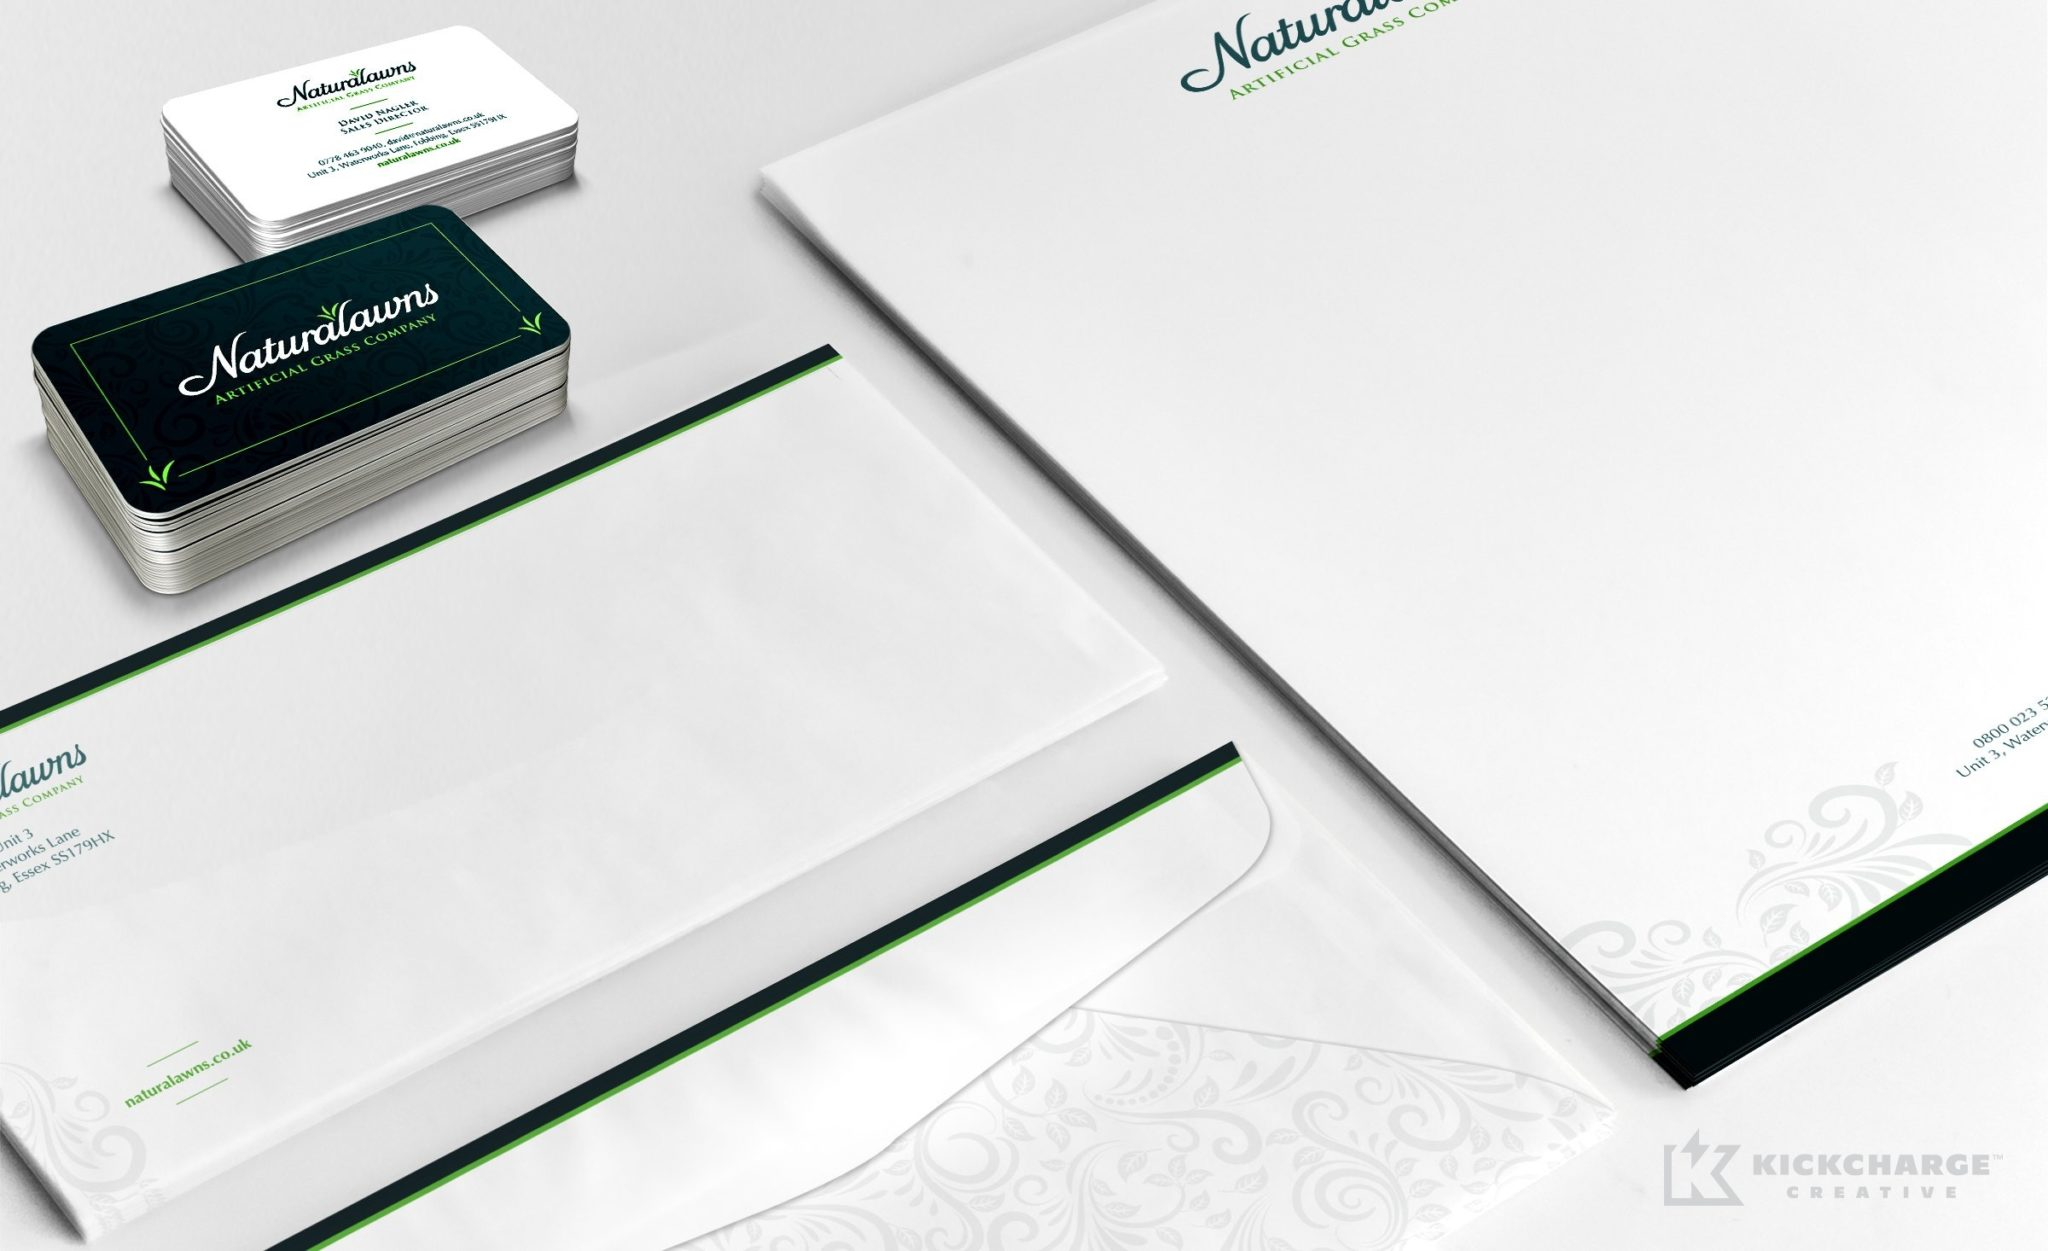 Stationery design for Naturalawns, an artificial grass company located in England.